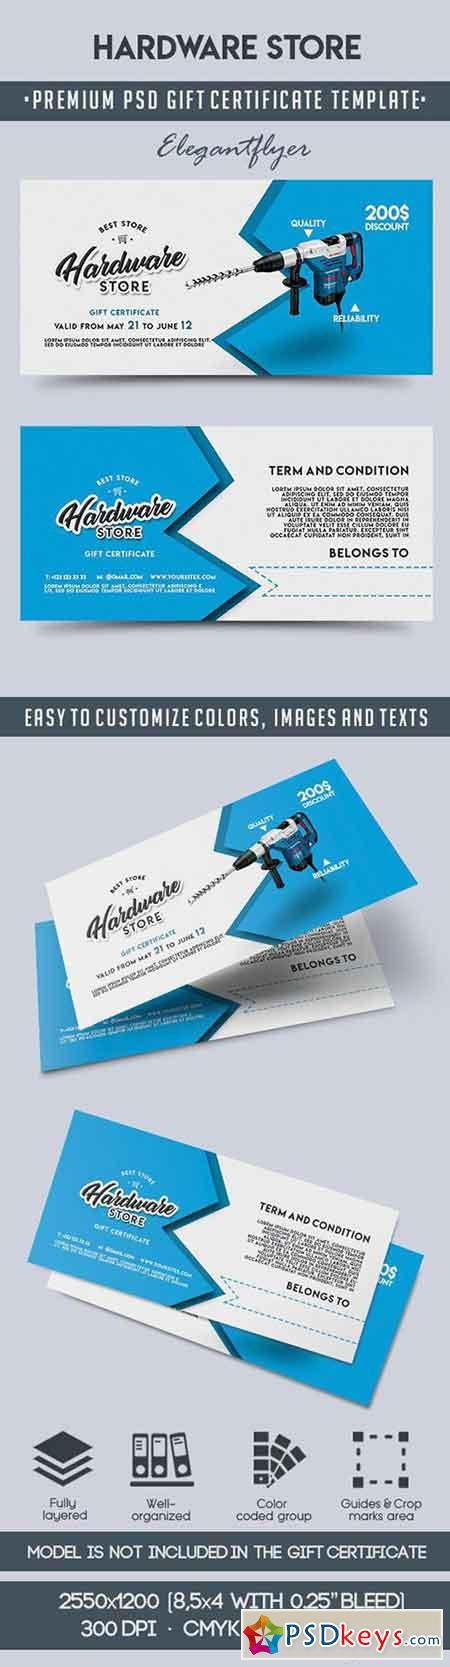 Hardware Store – Premium Gift Certificate PSD Template